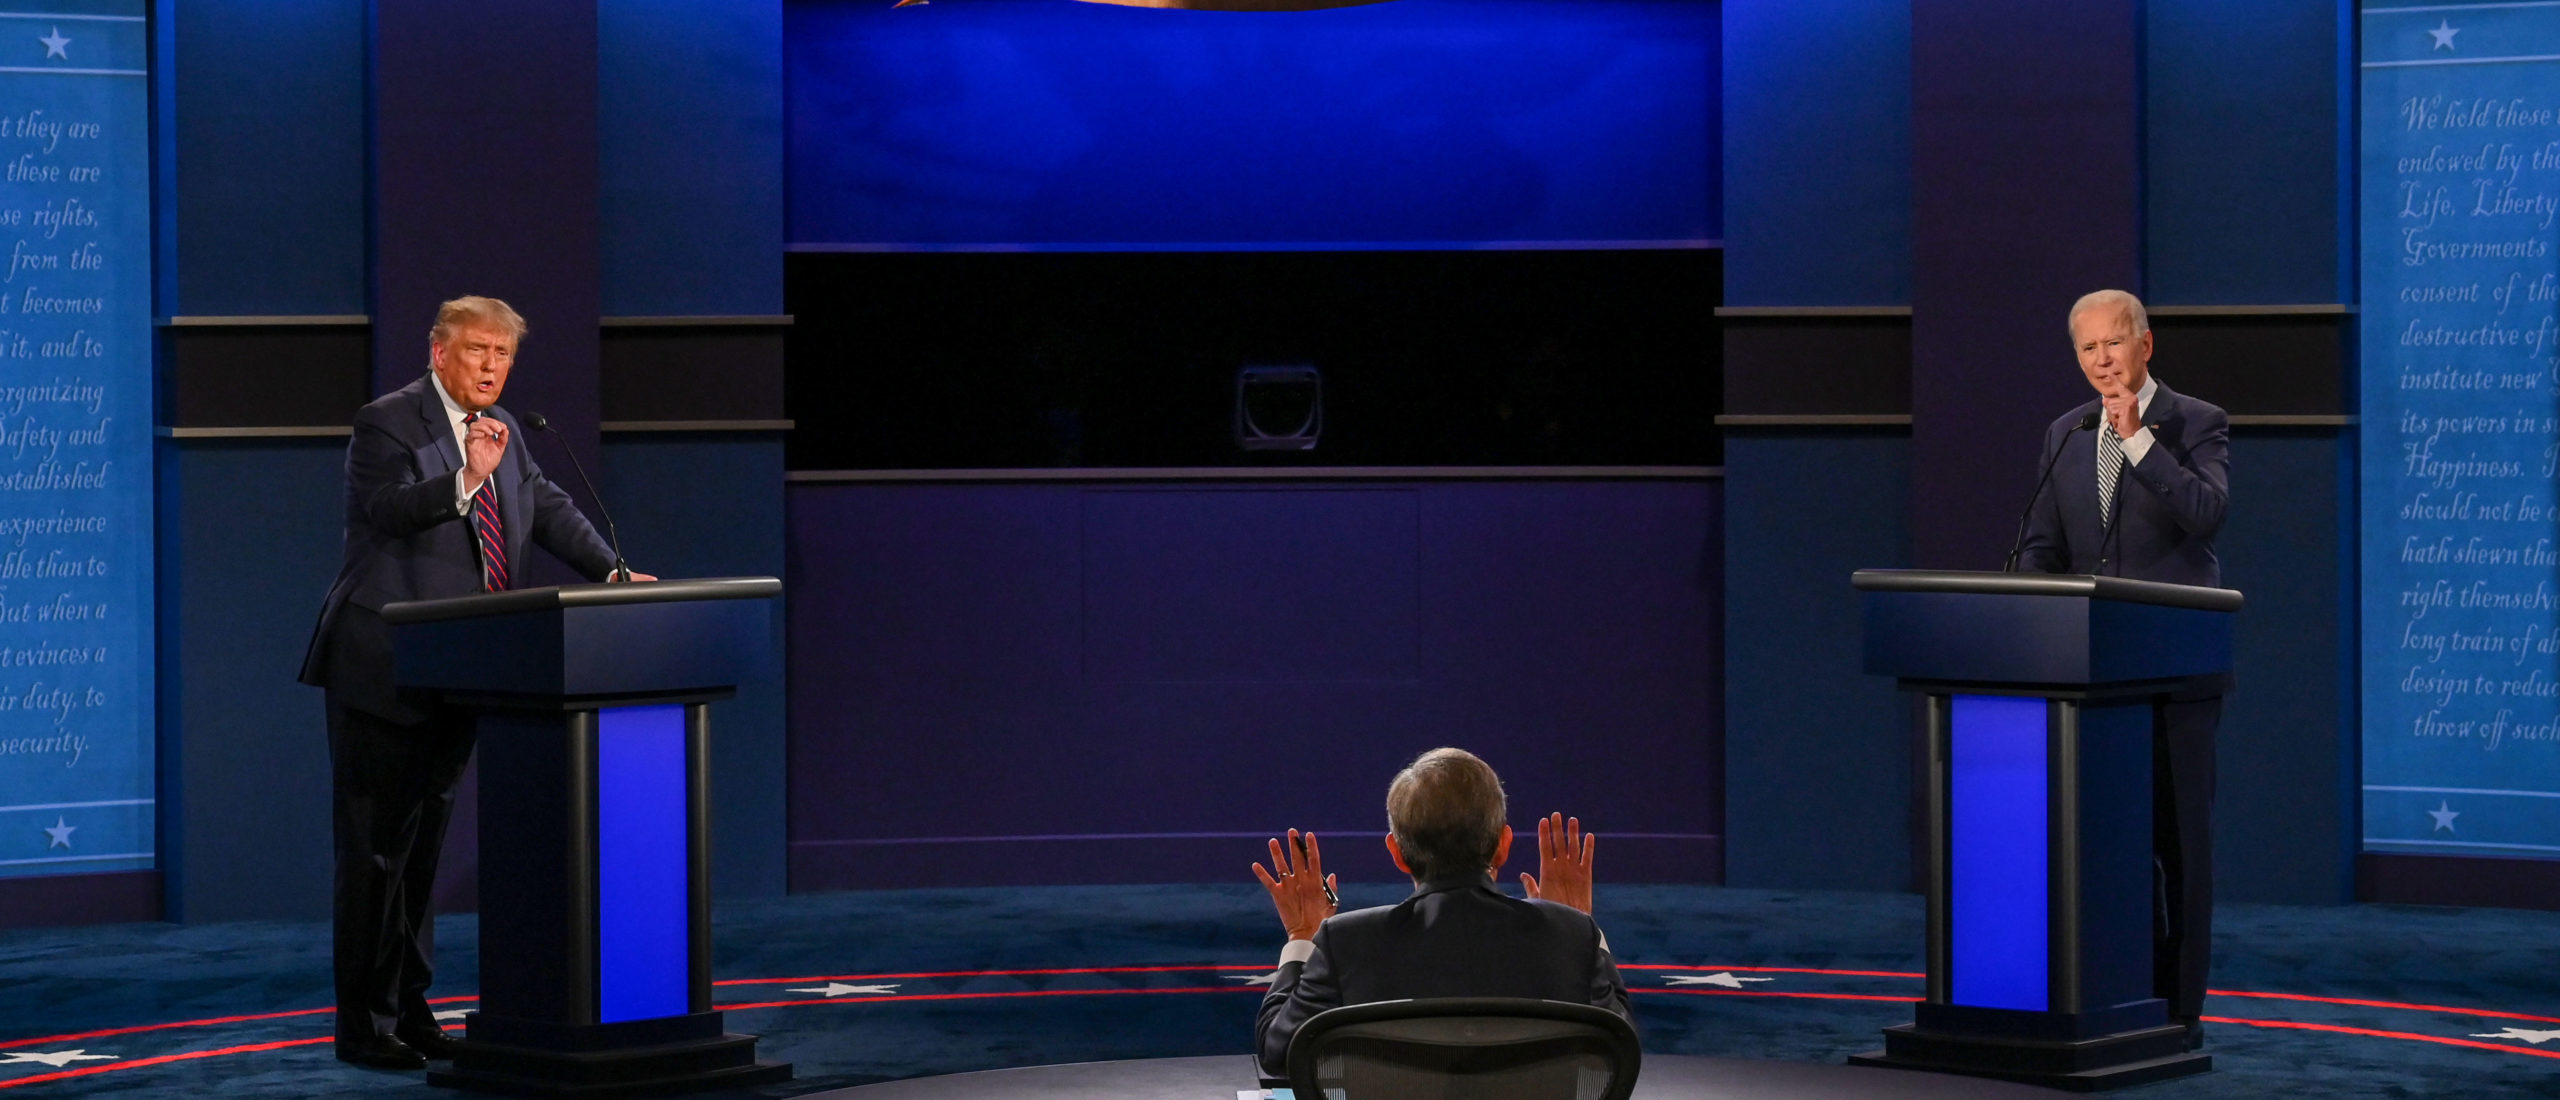 US President Donald Trump and Democratic Presidential candidate and former US Vice President Joe Biden exchange arguments as moderator and Fox News anchor Chris Wallace (C) raises his hands to stop them during the first presidential debate at Case Western Reserve University and Cleveland Clinic in Cleveland, Ohio, on September 29, 2020. (Photo by Jim Watson/AFP via Getty Images)